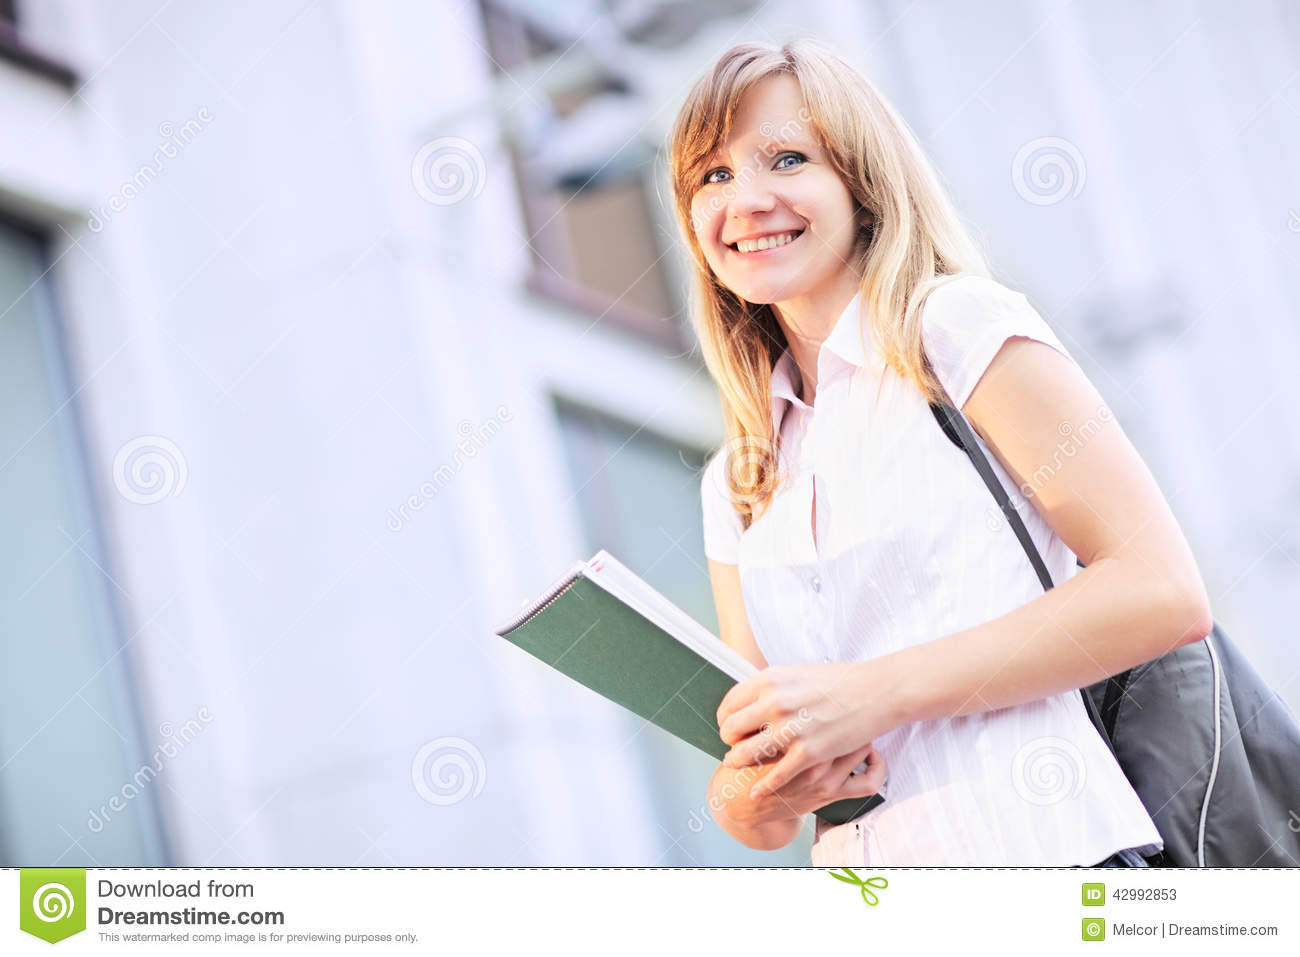 Young student, beautiful caucasian woman standing on blurred university building background in the morning.